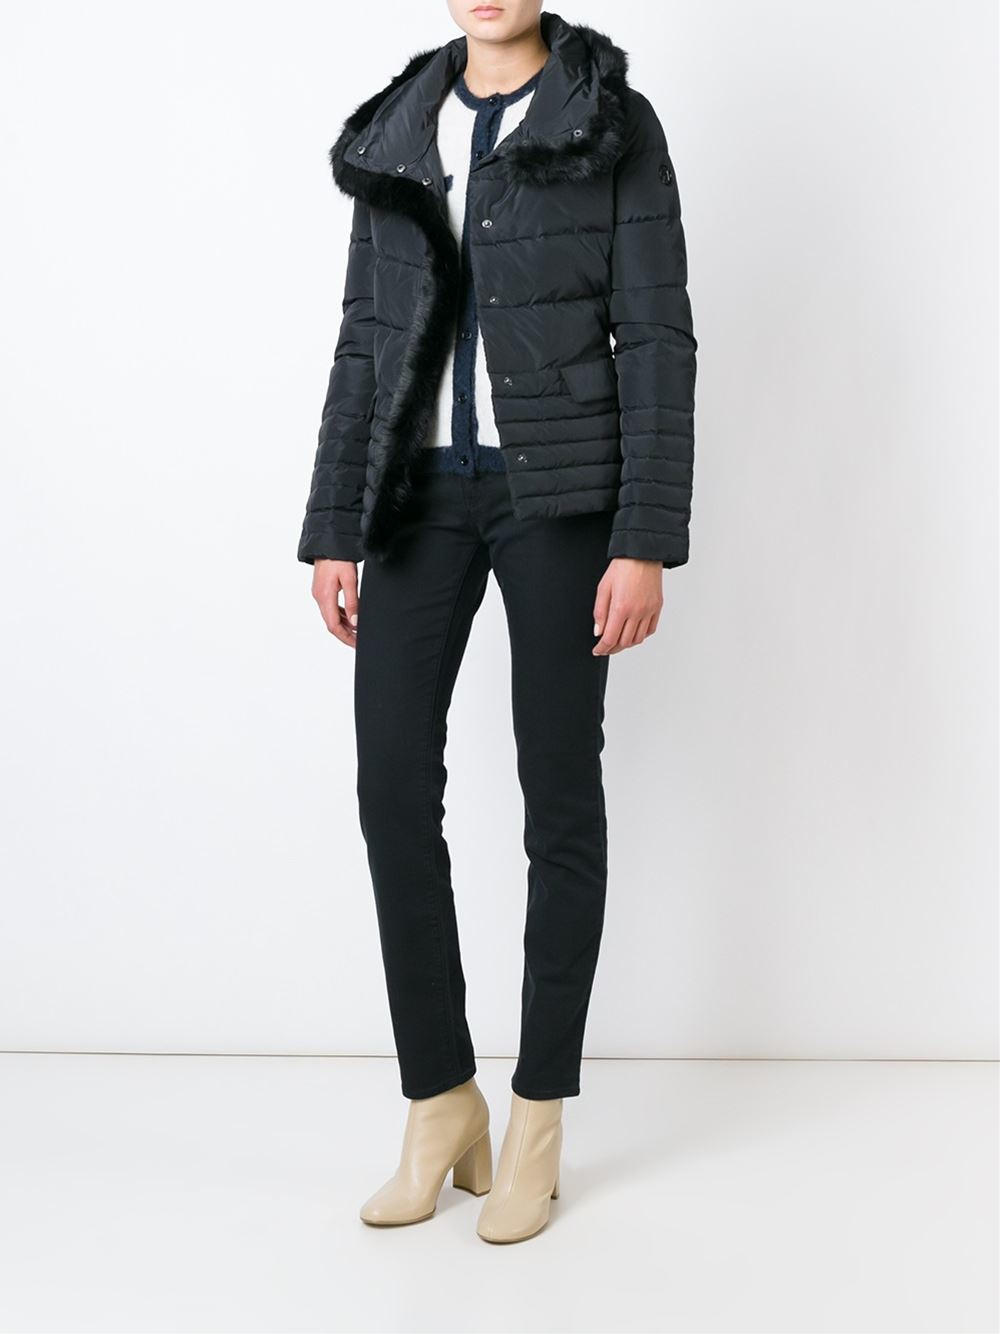 Armani jeans Faux Fur Trimmed Padded Jacket in Black   Lyst : armani jeans quilted jacket - Adamdwight.com